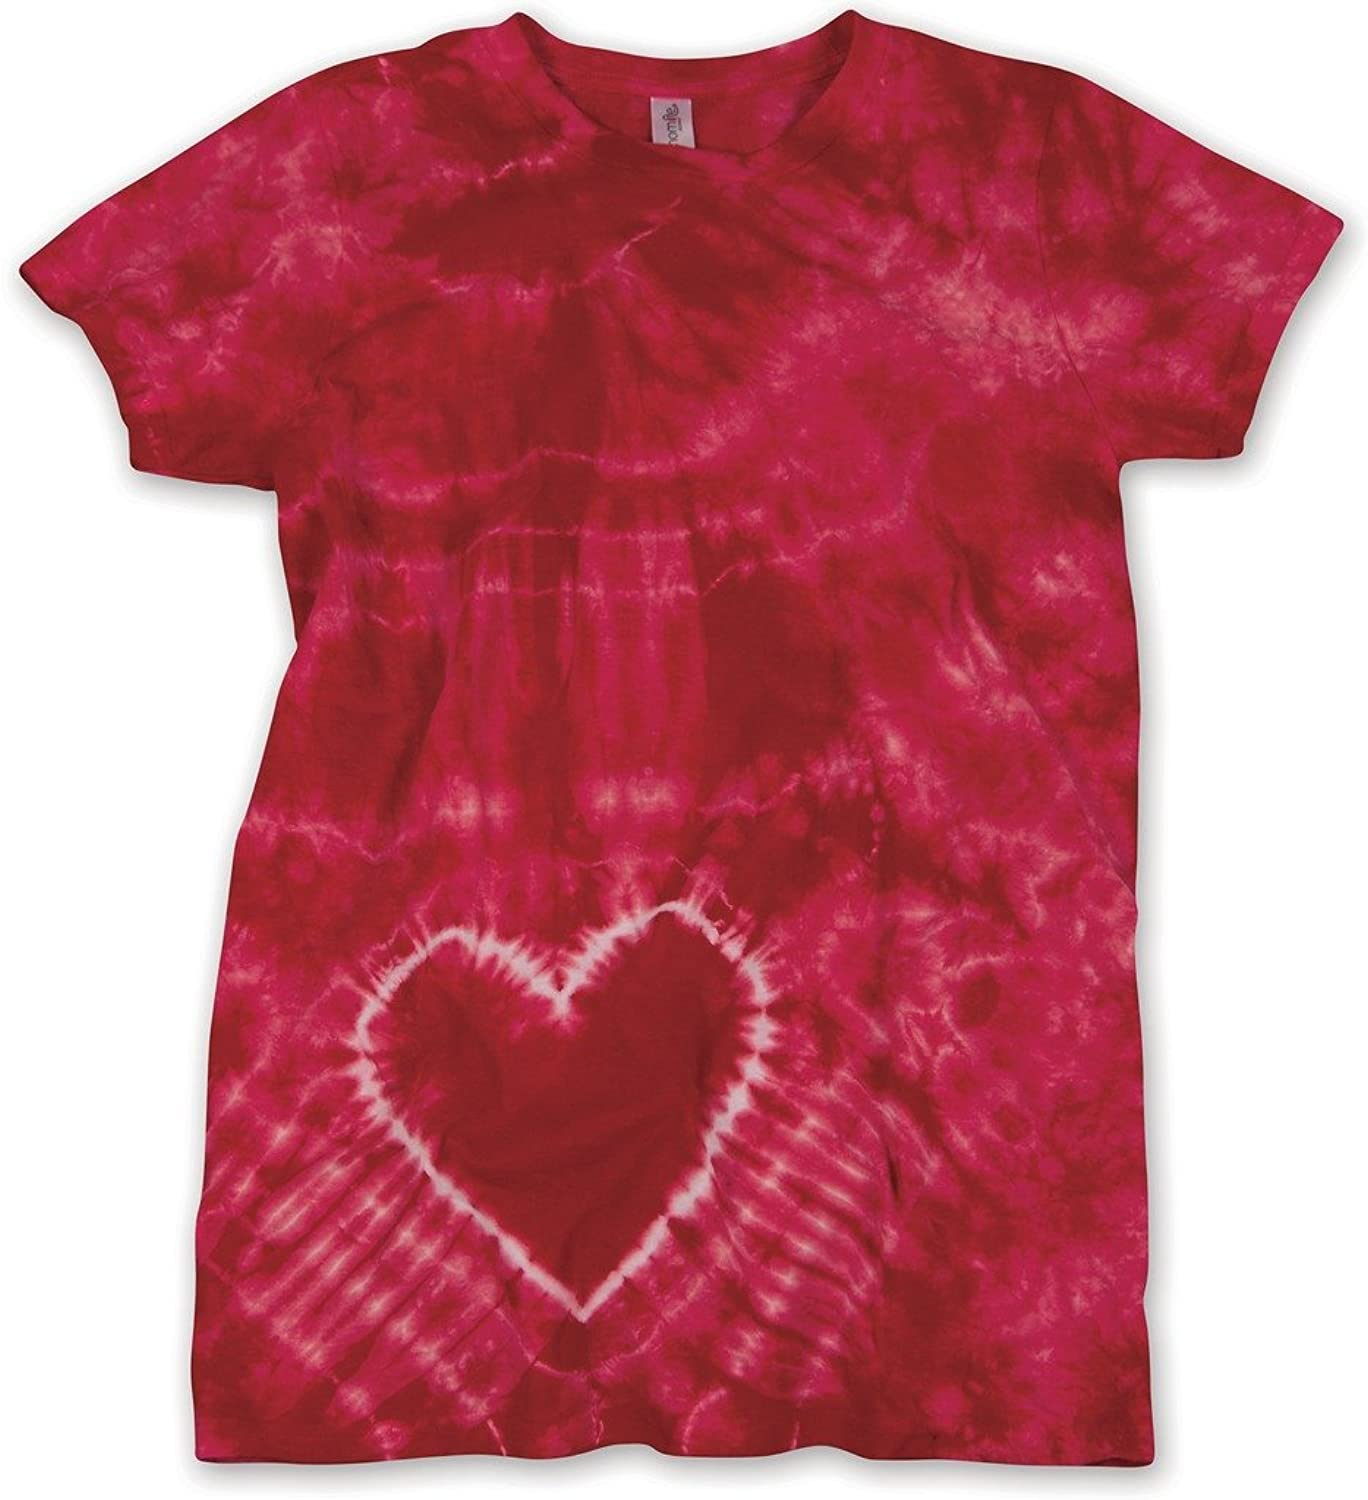 Yoga Clothing For You Ladies Heart Tie Dye Tee Shirt